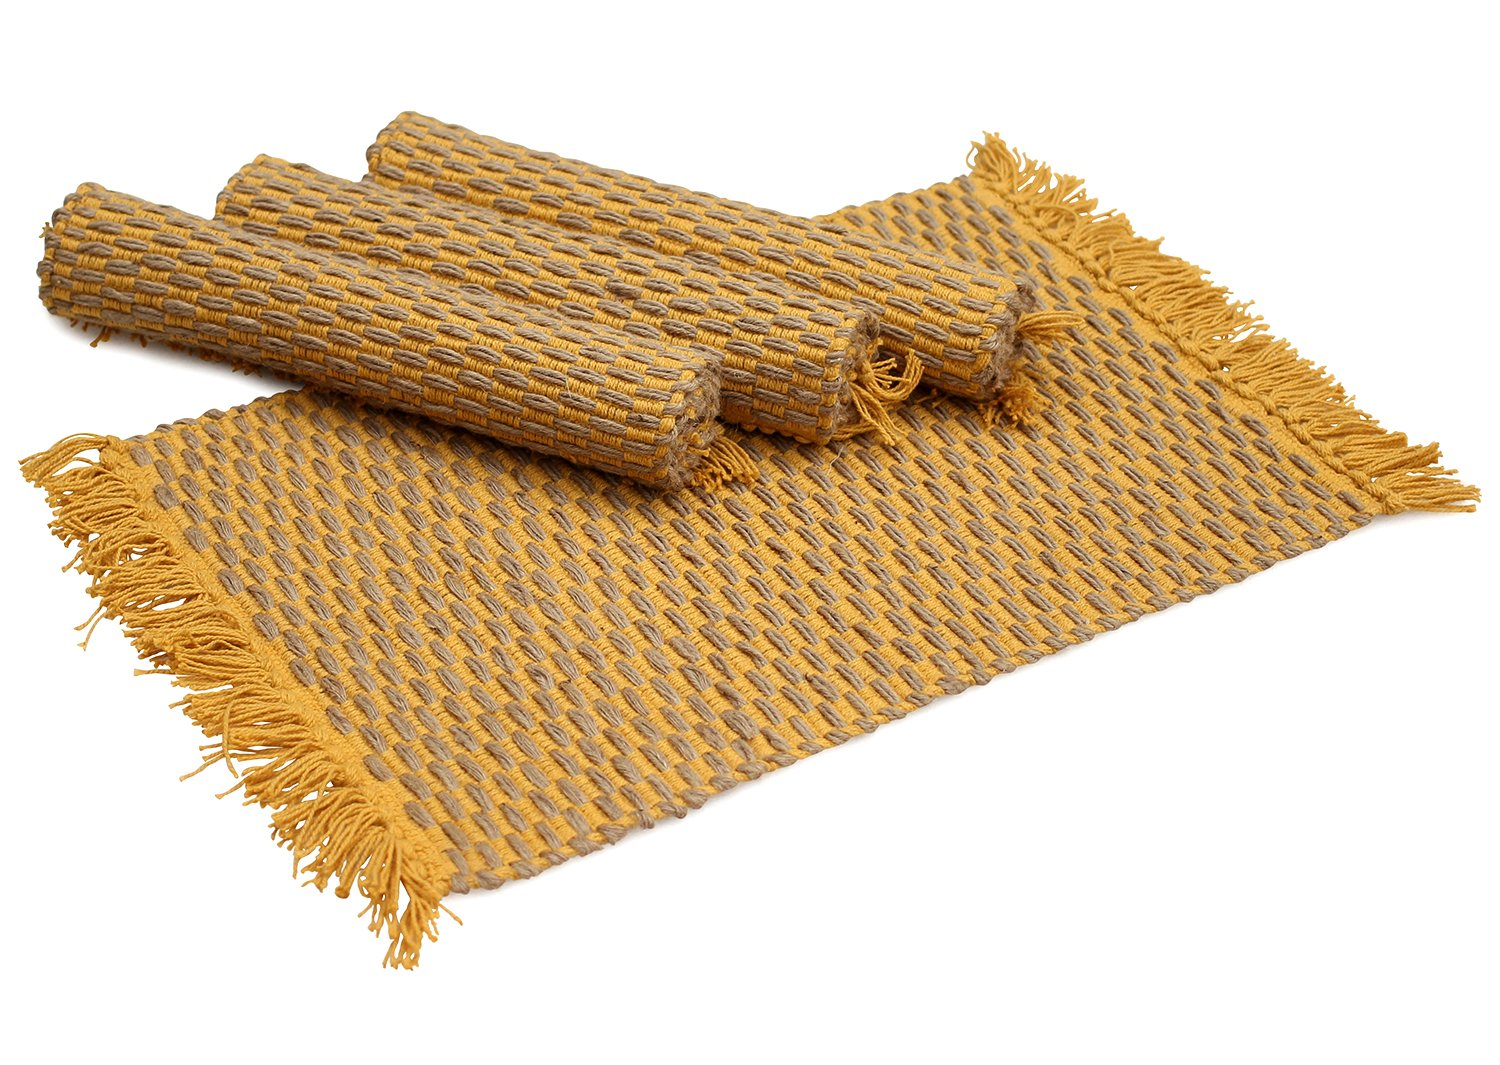 Amazon SouvNear Organic Burlap Place Mat Eco Friendly Placemats For Dining Table Decor Decorations Hand Woven Kitchen Mats Set Of 4 Home